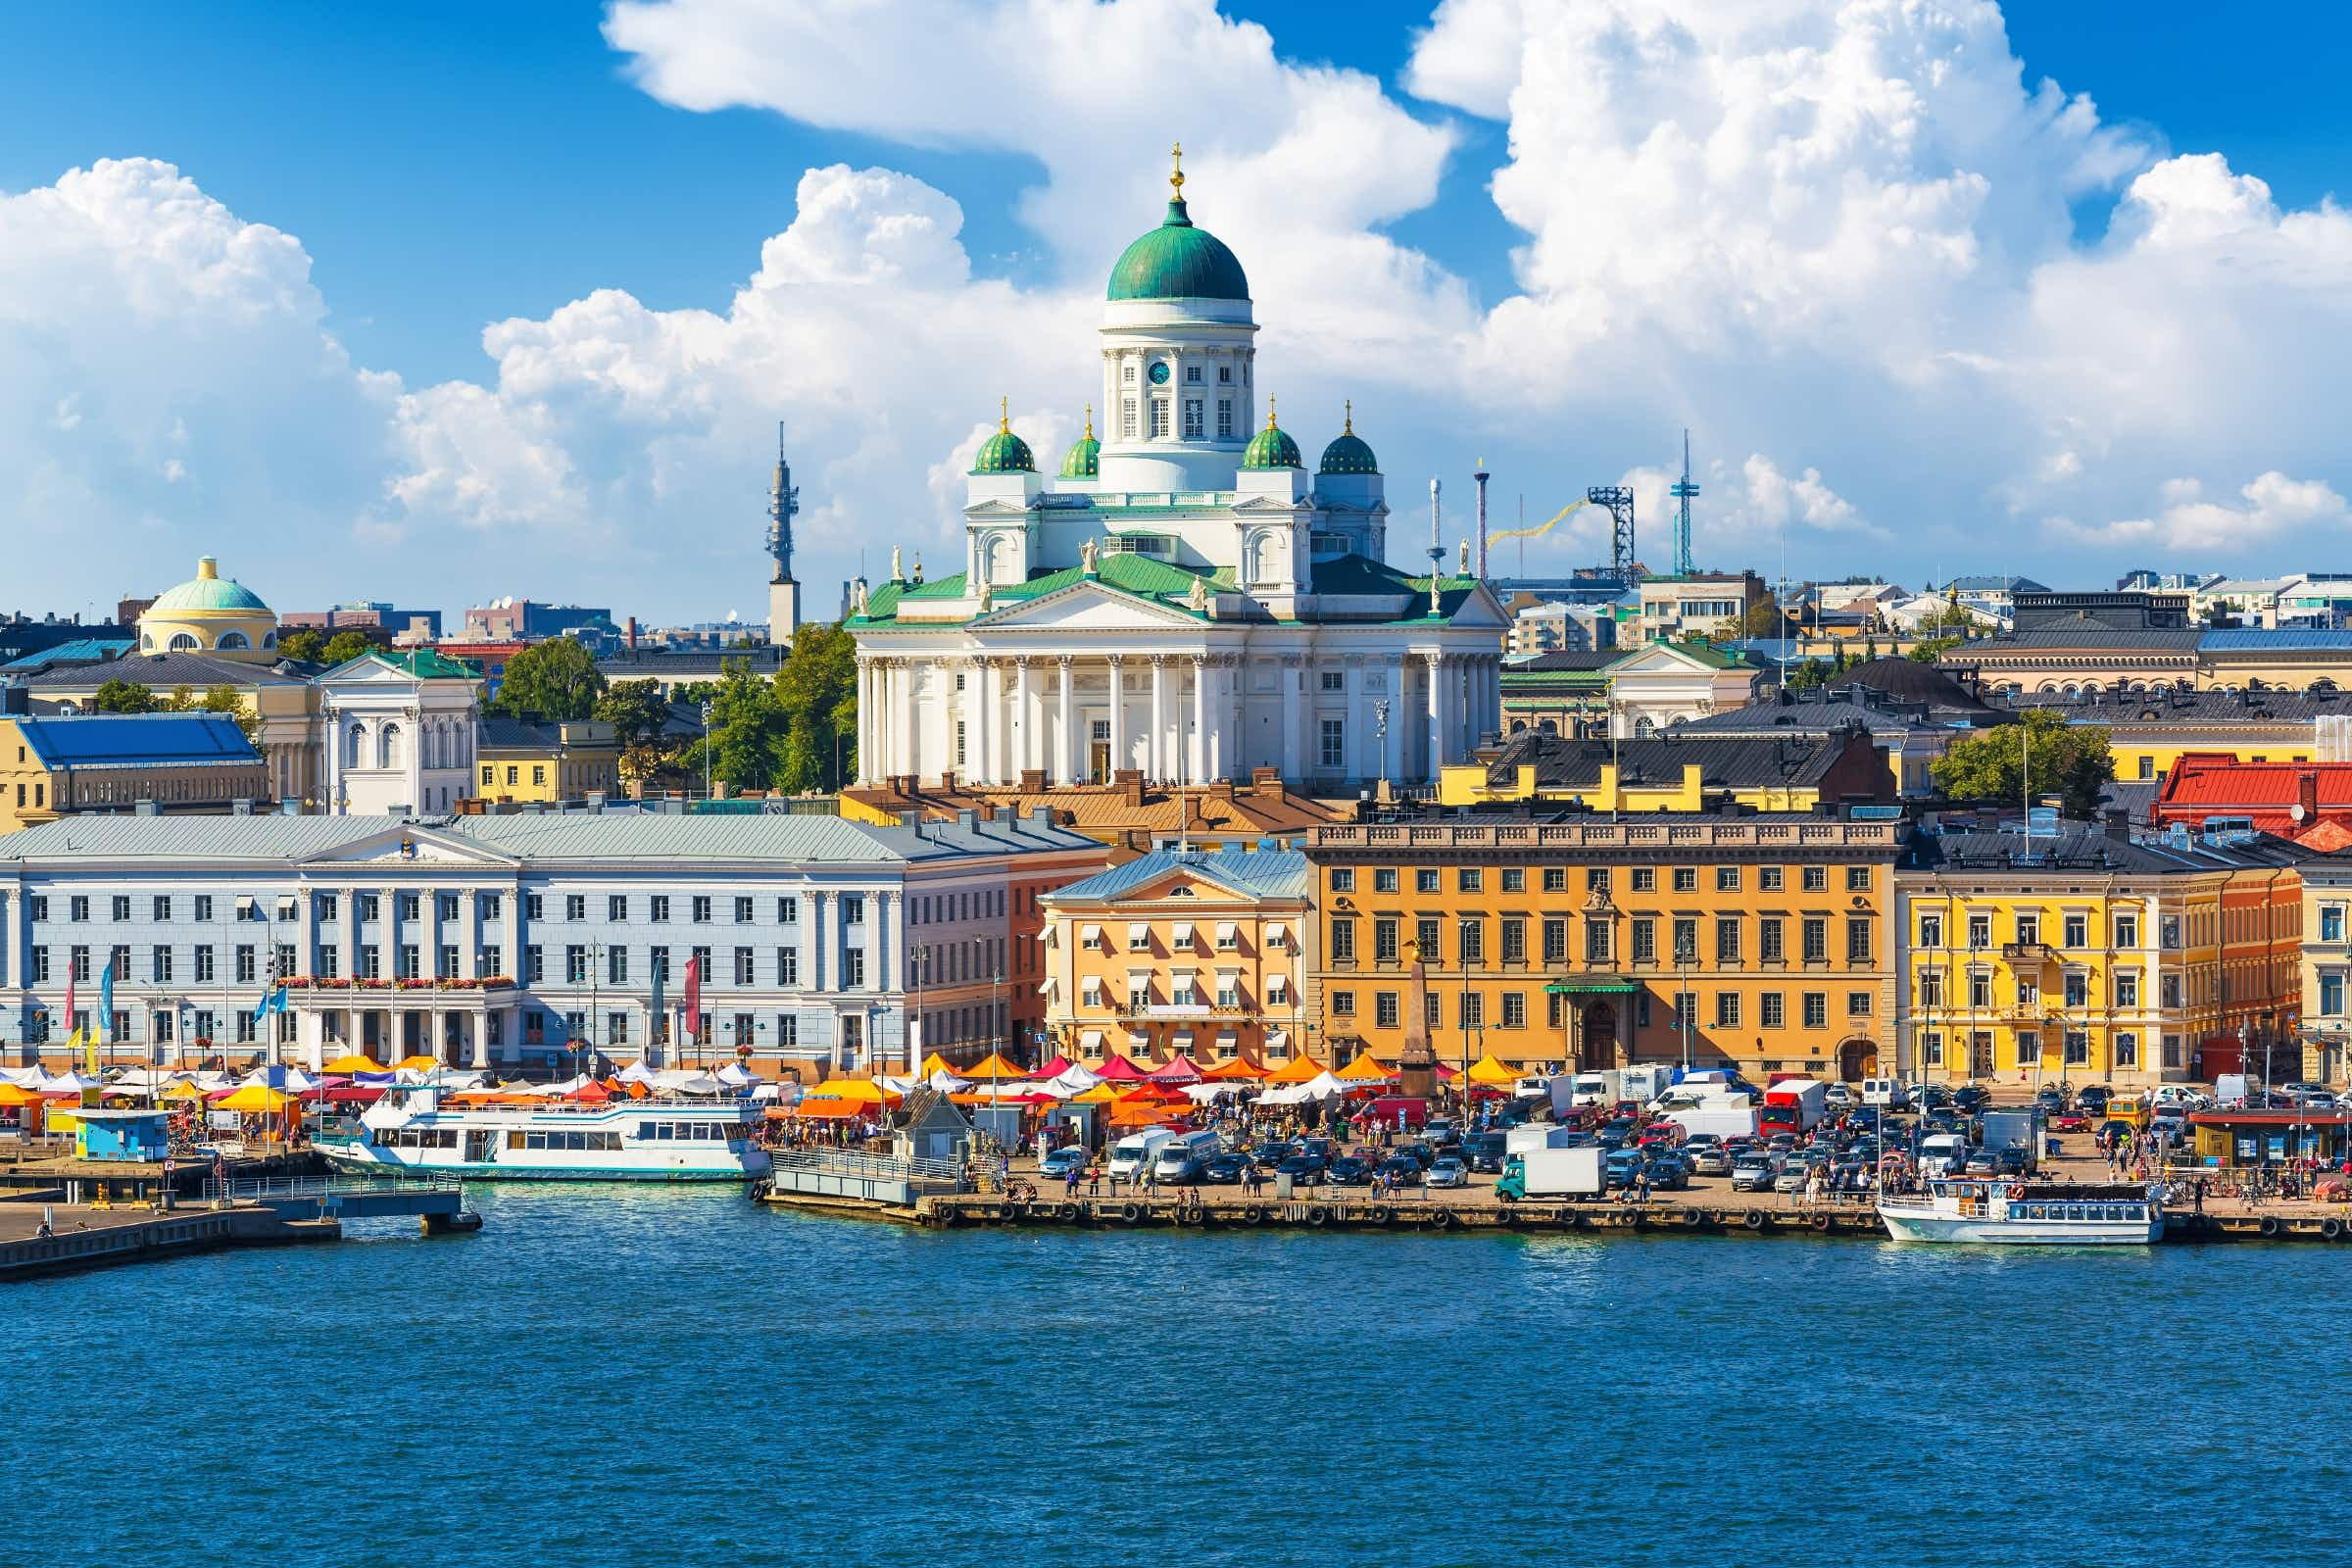 Finland has been named the safest country in the world for travellers